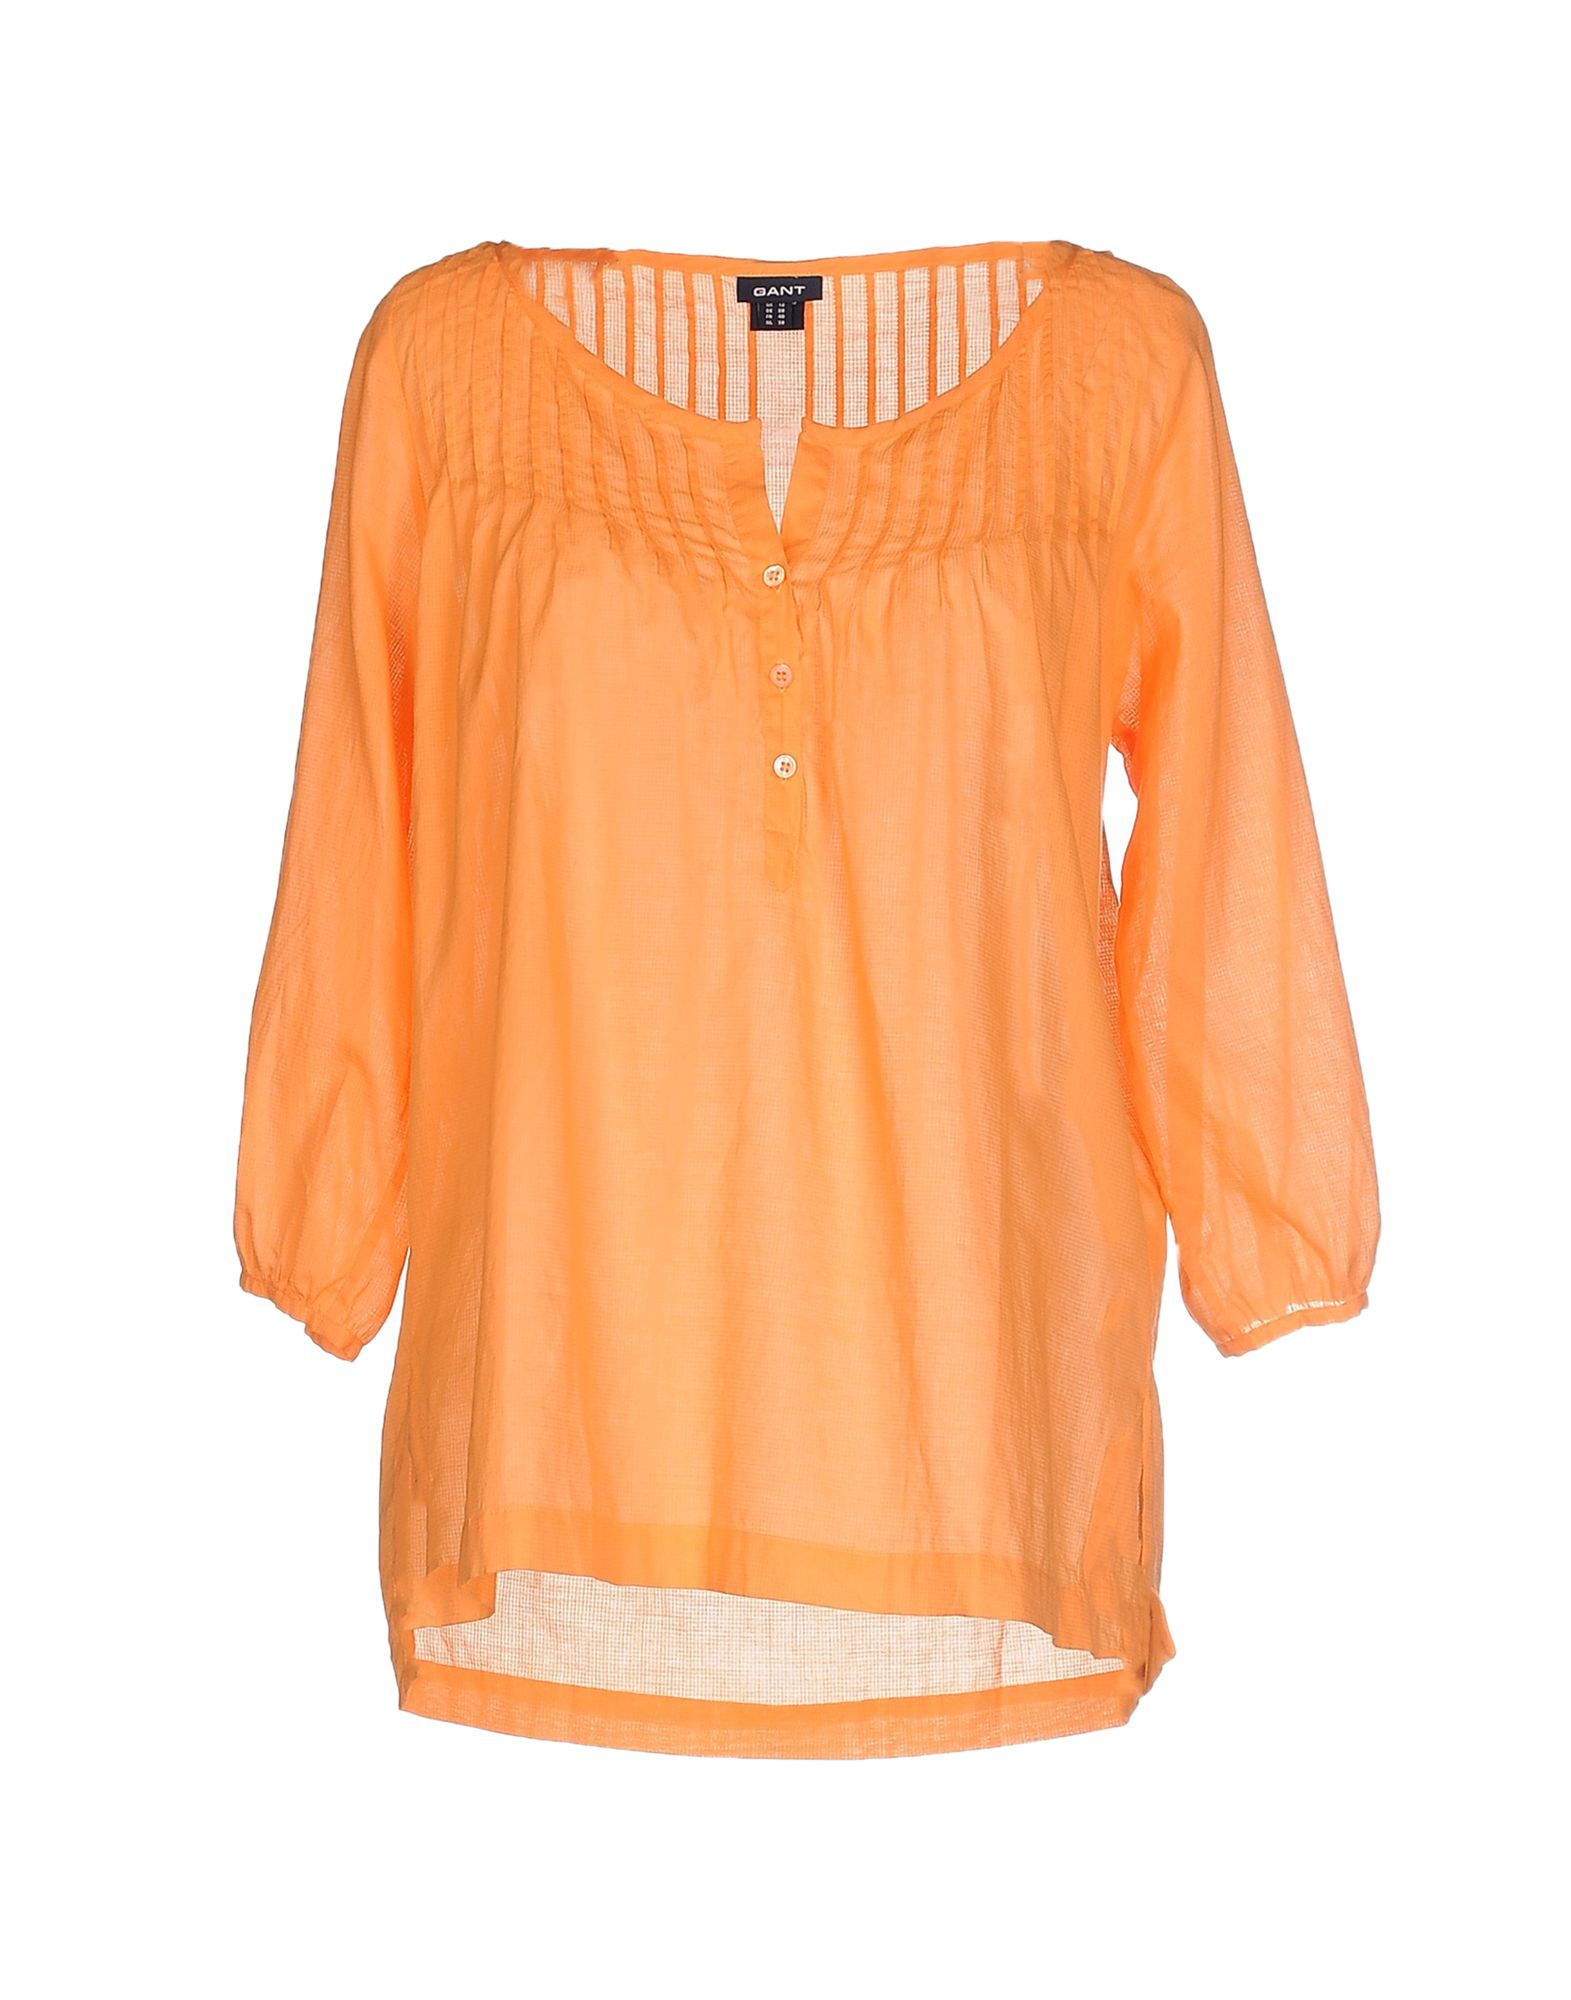 FREE SHIPPING AVAILABLE! Shop tiodegwiege.cf and save on Orange Tops.